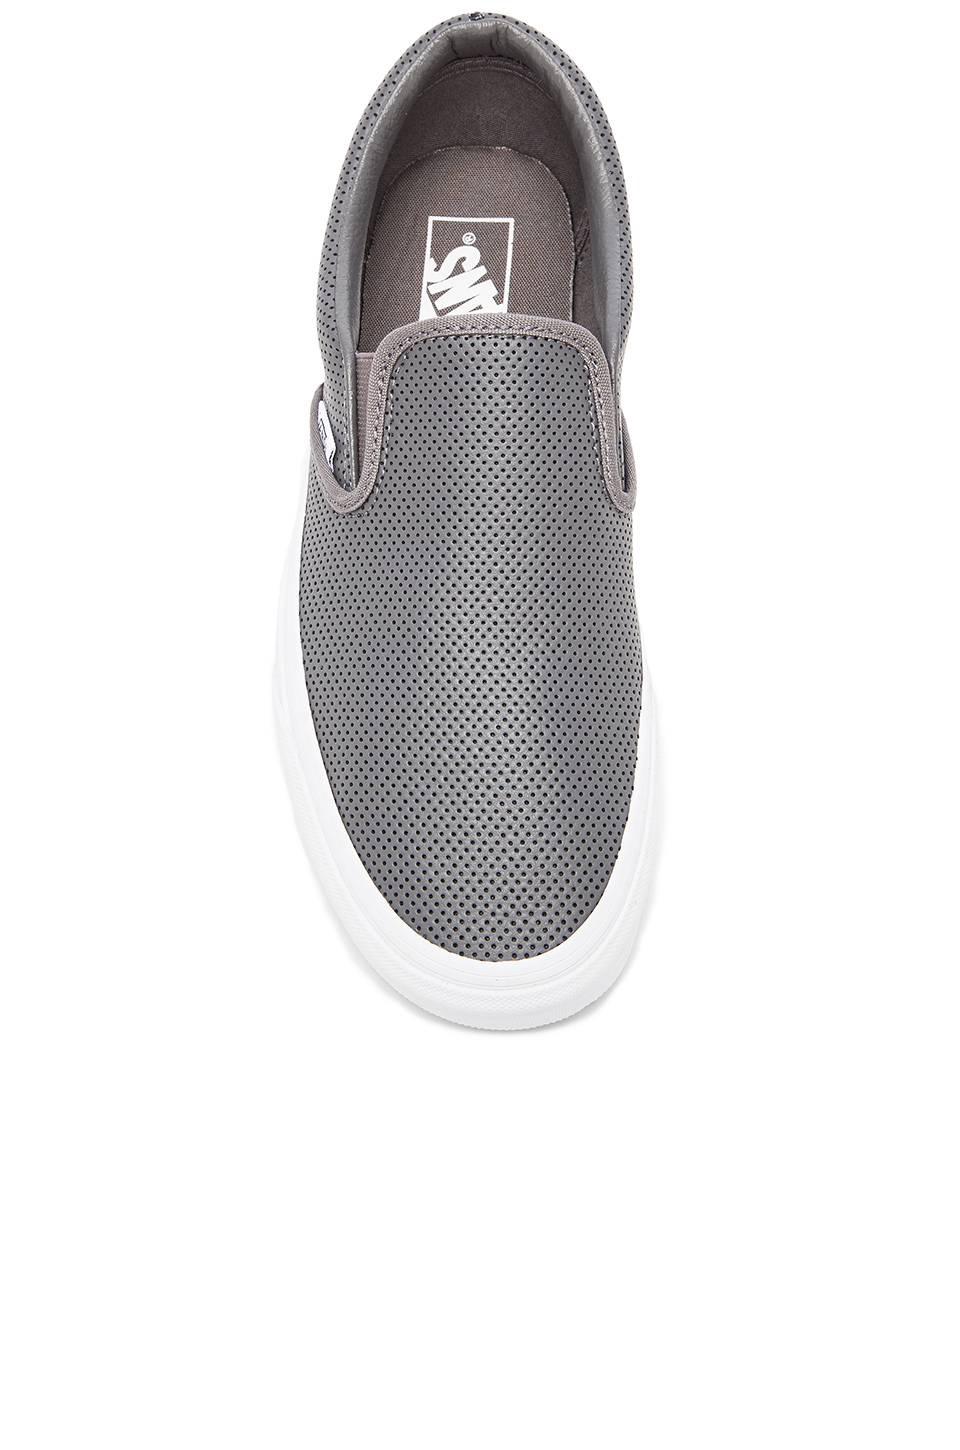 9a76a9ac0ef0 Lyst - Vans Classic Slip-On Perforated Leather in Gray for Men